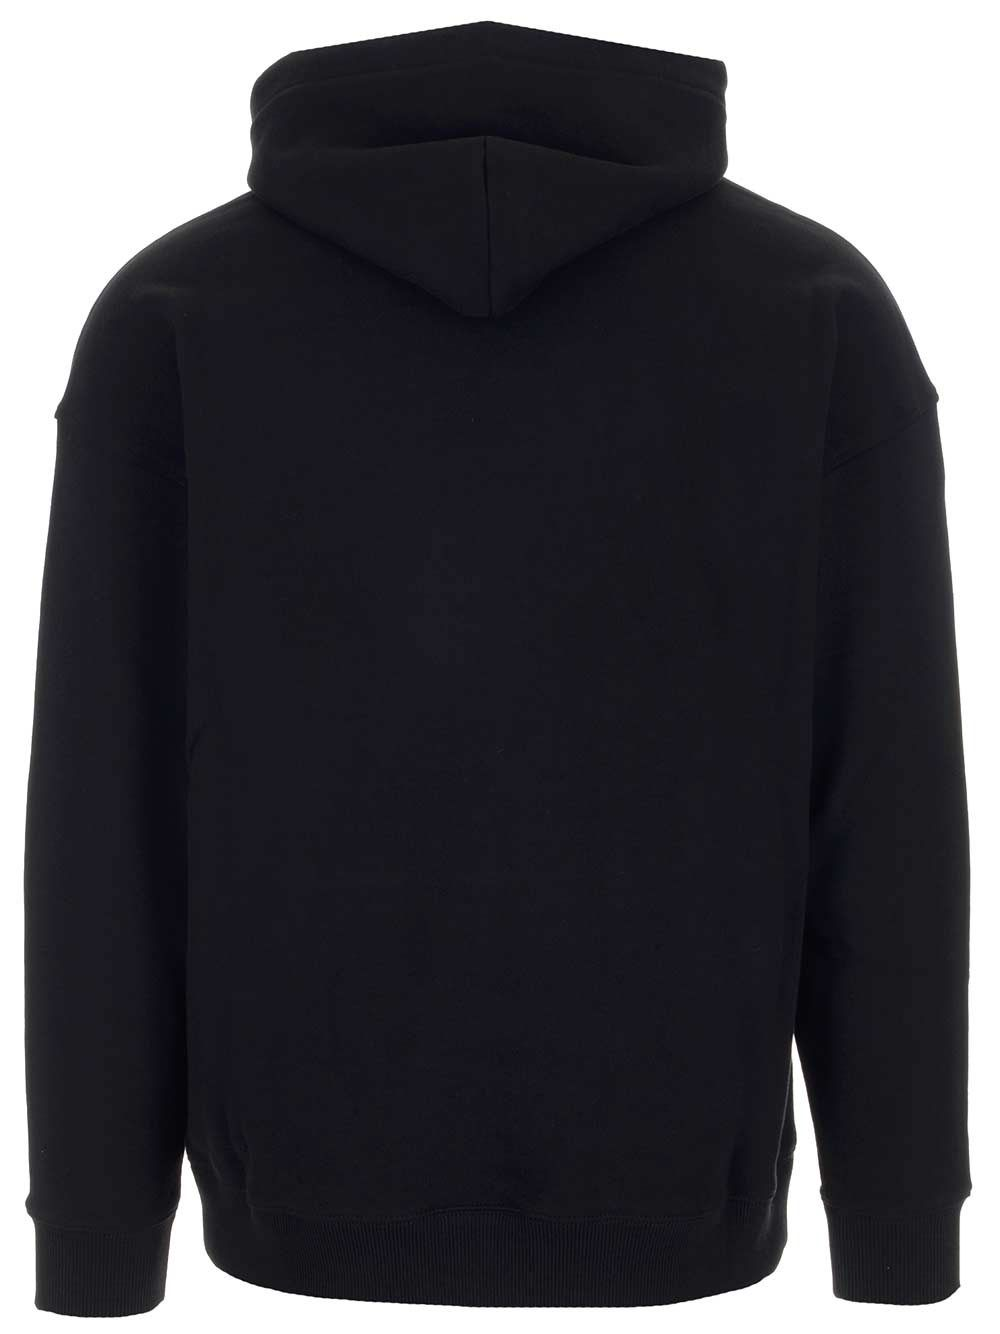 GIVENCHY Cottons GIVENCHY MEN'S BLACK OTHER MATERIALS SWEATSHIRT